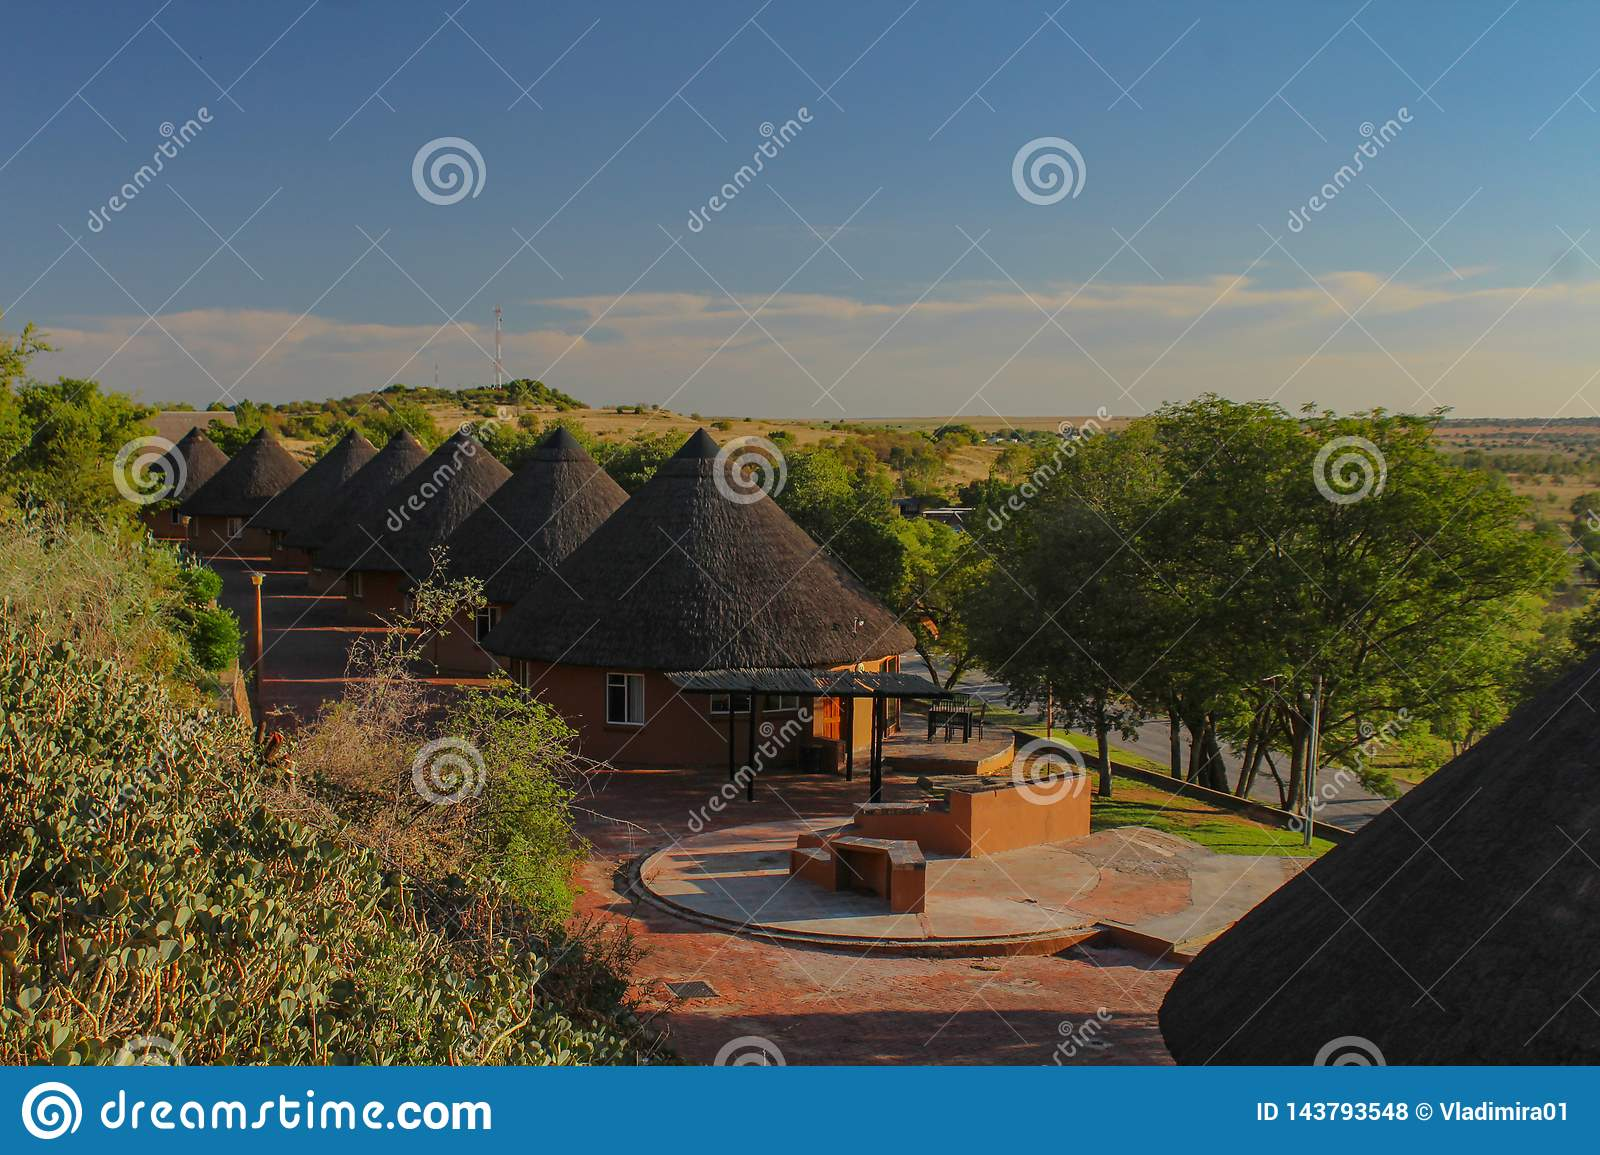 Tourism - small round lodges in Willem Pretorius game reserve in South Africa